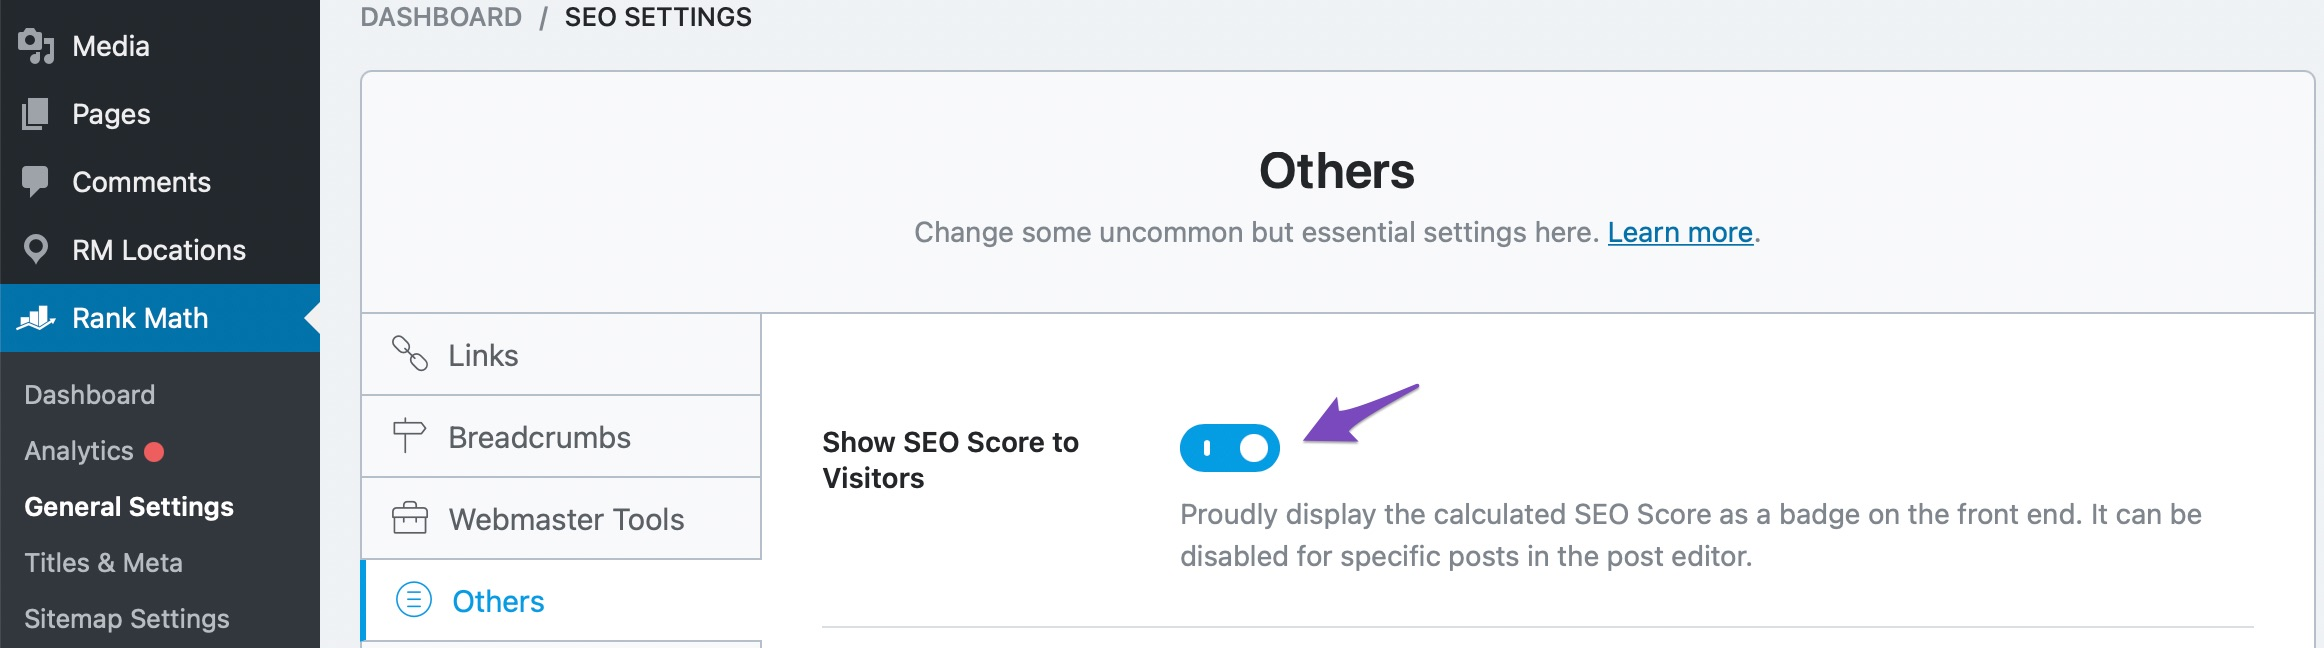 Enable Show SEO Score to visitors option